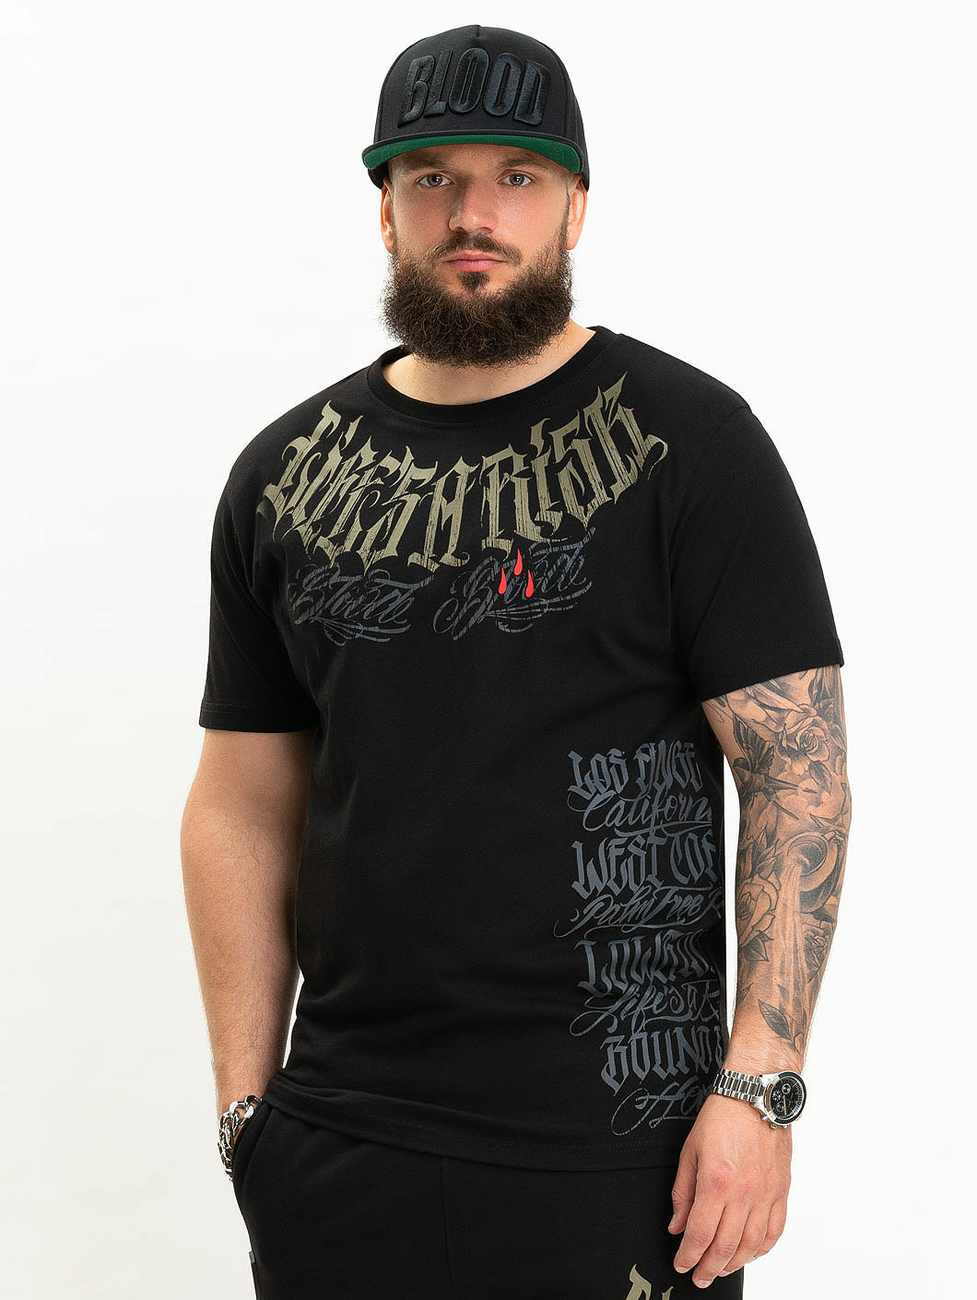 Blood In Blood Out Miembros T-Shirt 3XL